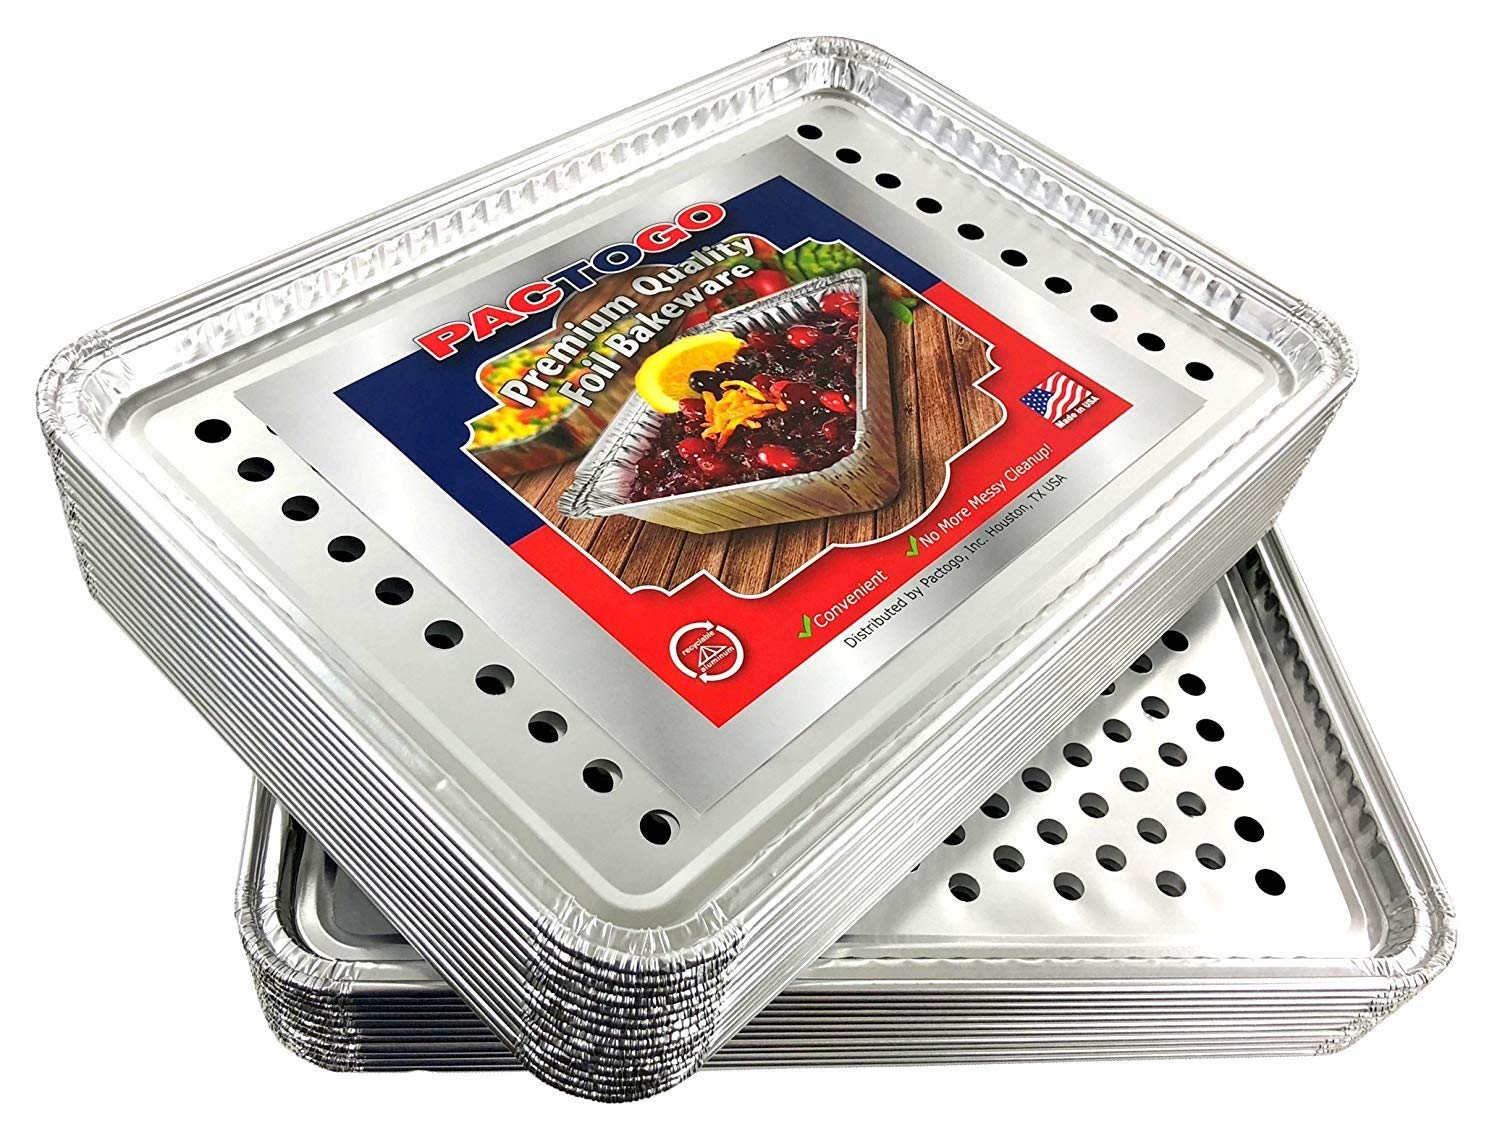 Pactogo 16'' x 11'' Aluminum Foil BBQ Gourmet Grill Topper Pan (Pack of 25) by PTG